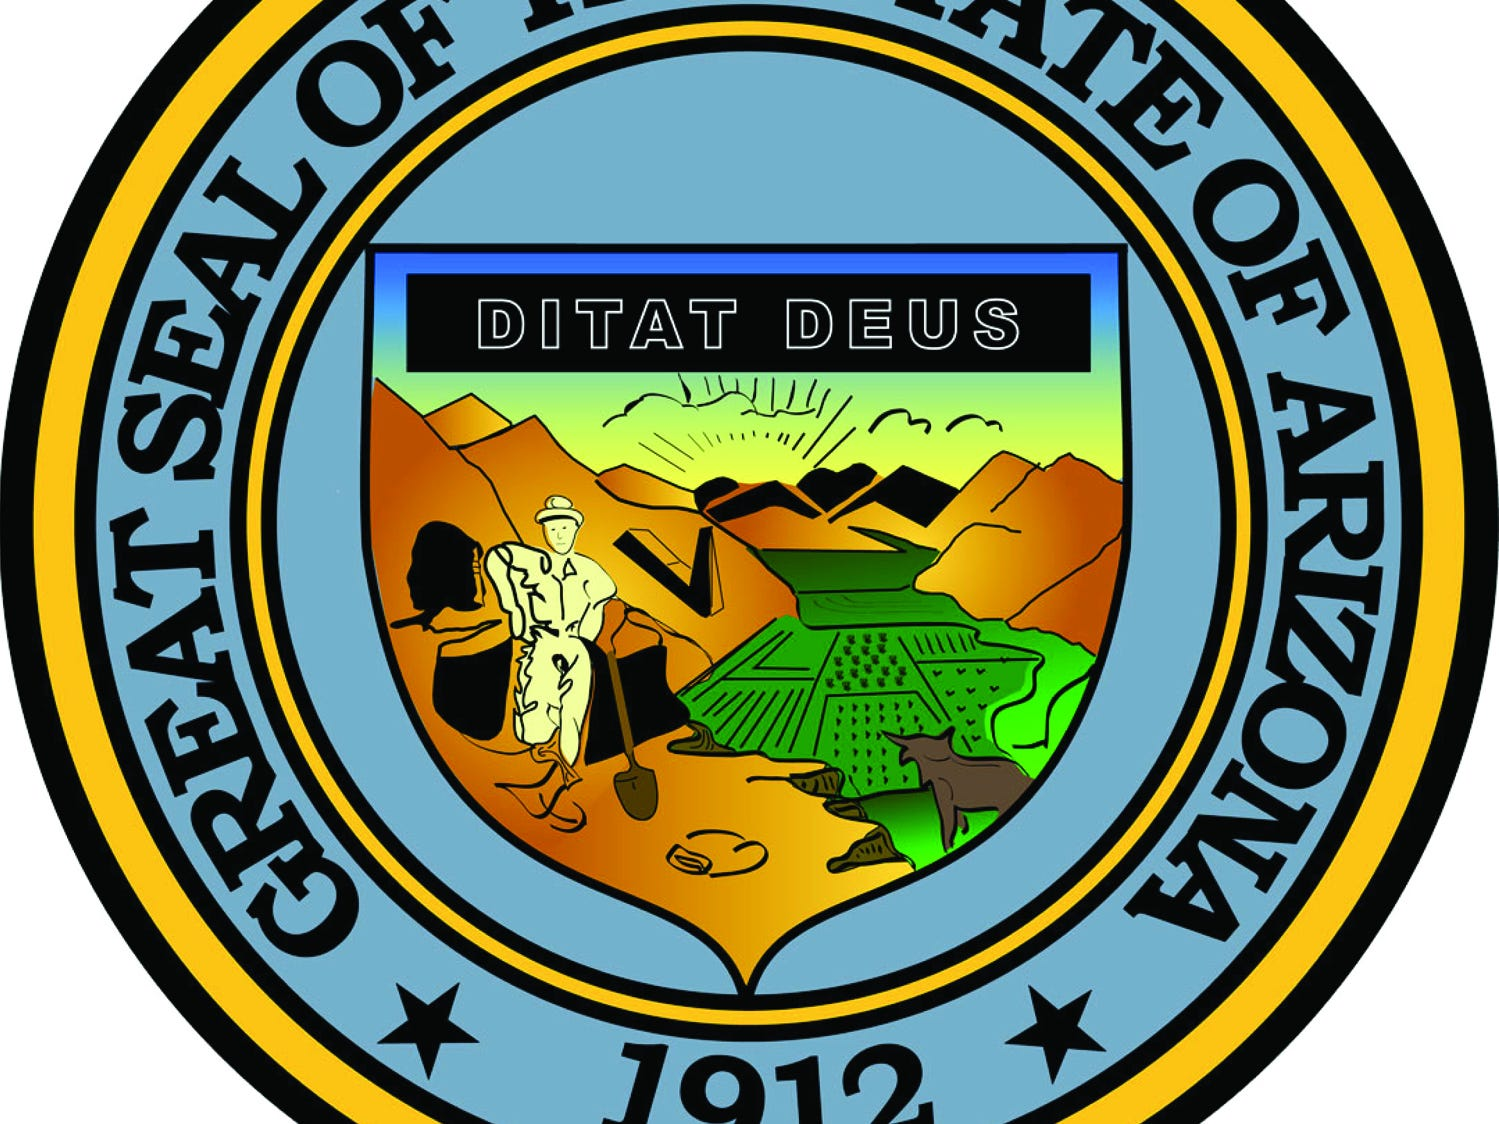 Is the Great Seal of Arizona really all that great? You decide.